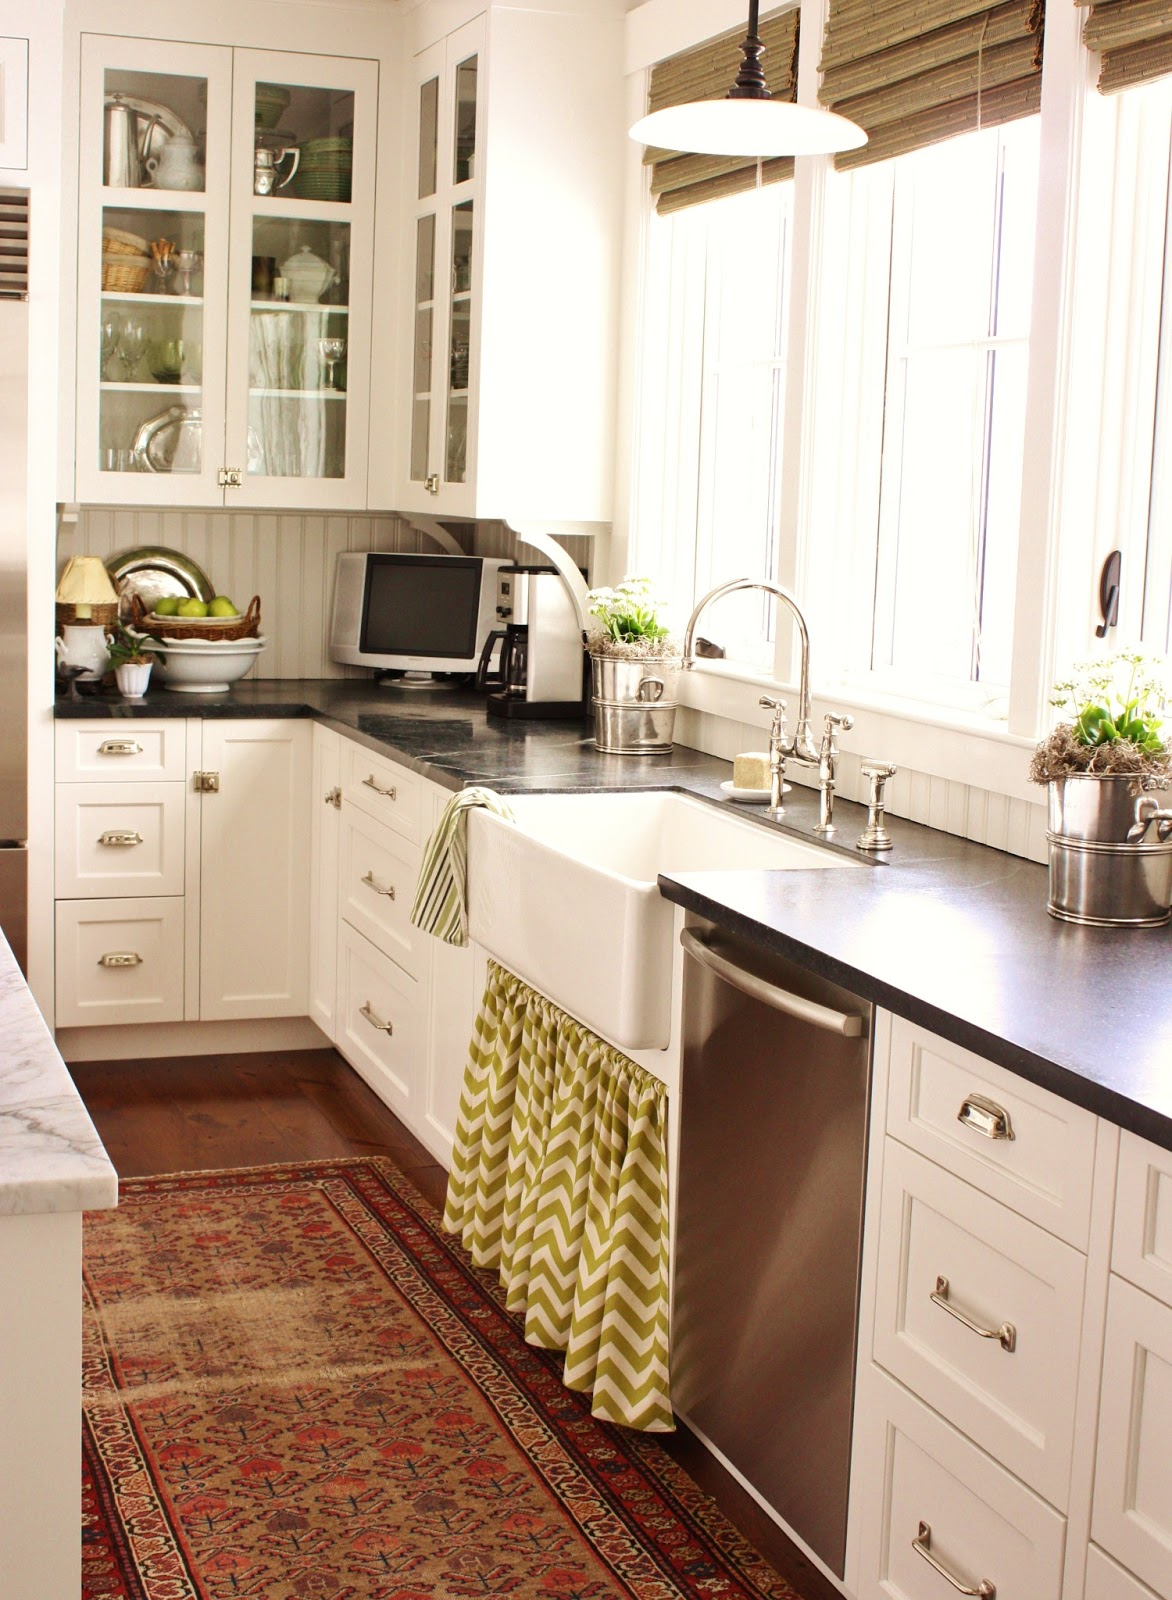 a new kitchen skirt for spring sink rug. beautiful ideas. Home Design Ideas